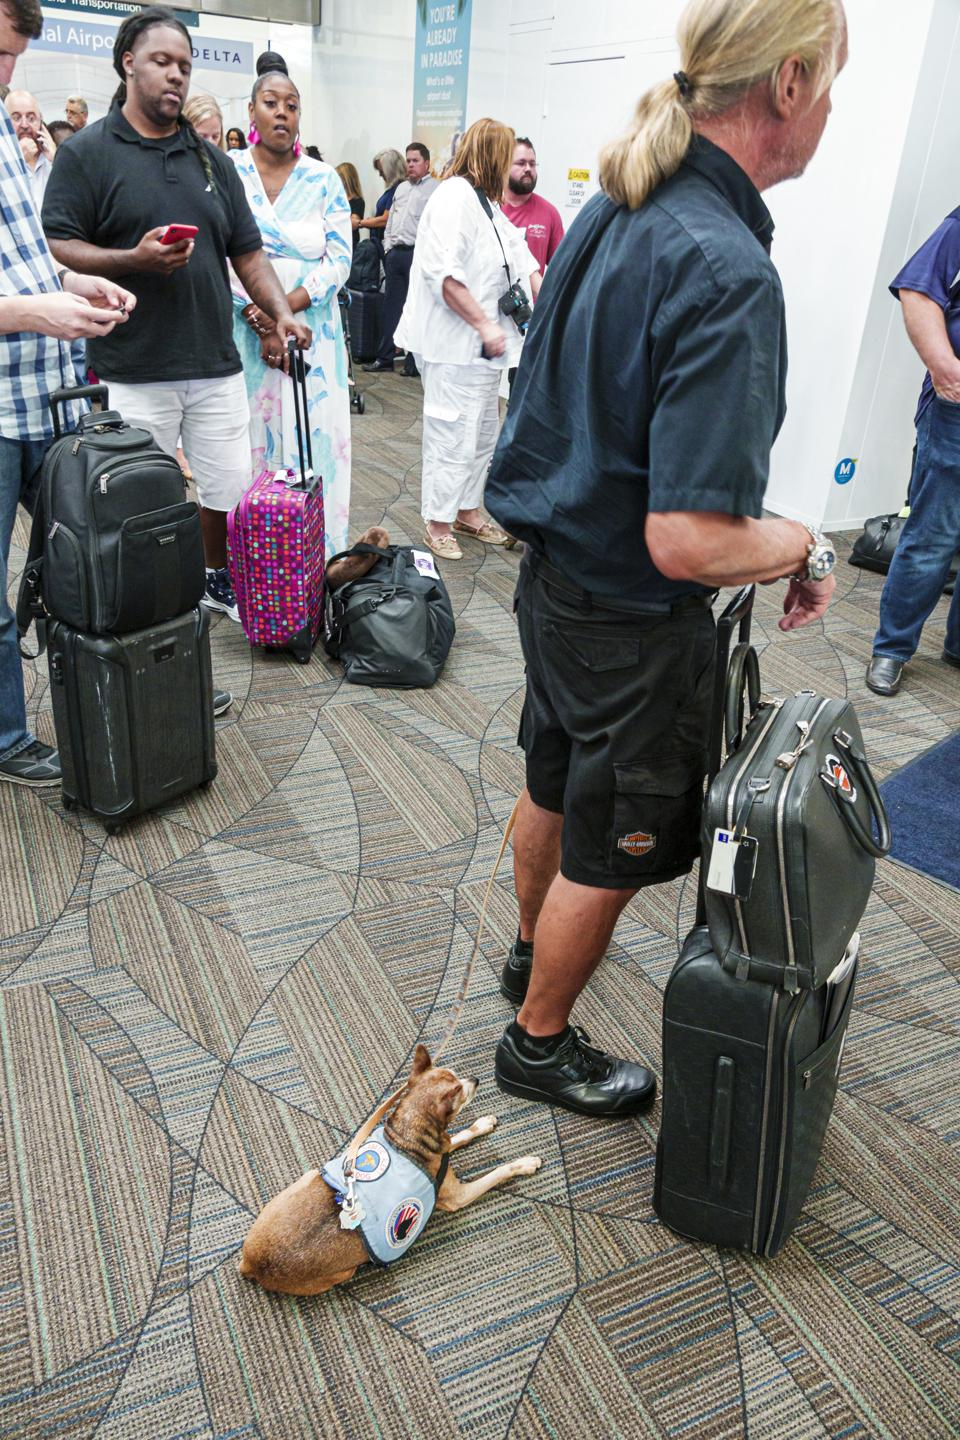 Florida, Fort Lauderdale, airport passenger gate area, man with service dog